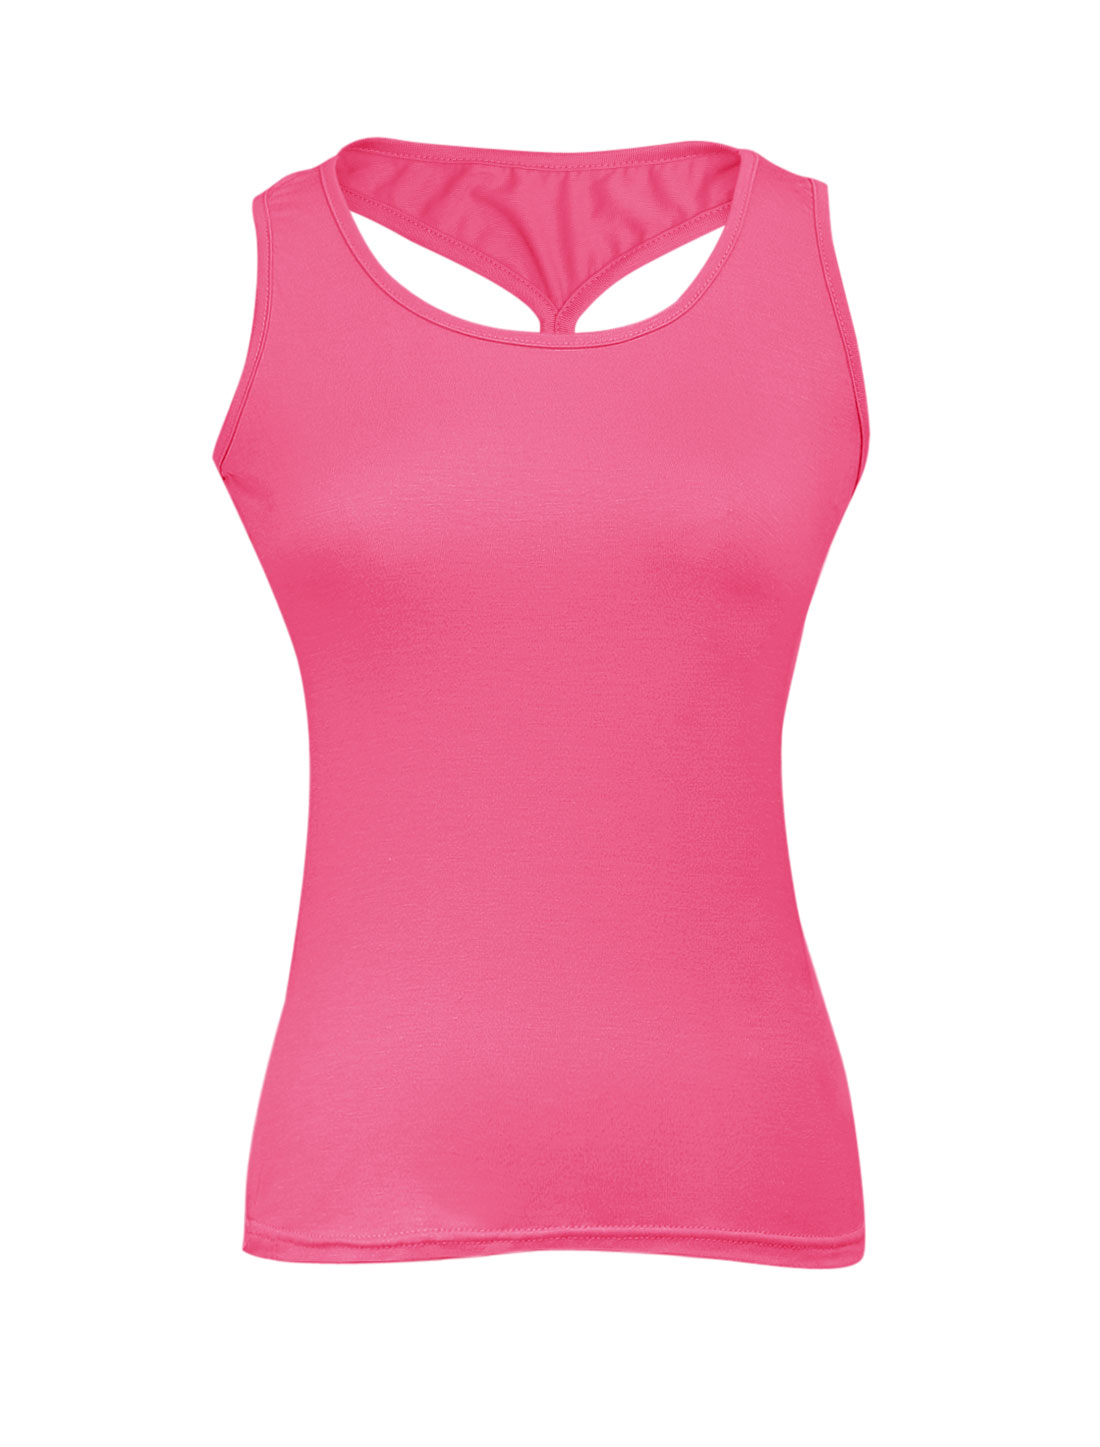 Ladies U Neck Cross Back Elastic Soft Tank Top Fuchsia XS